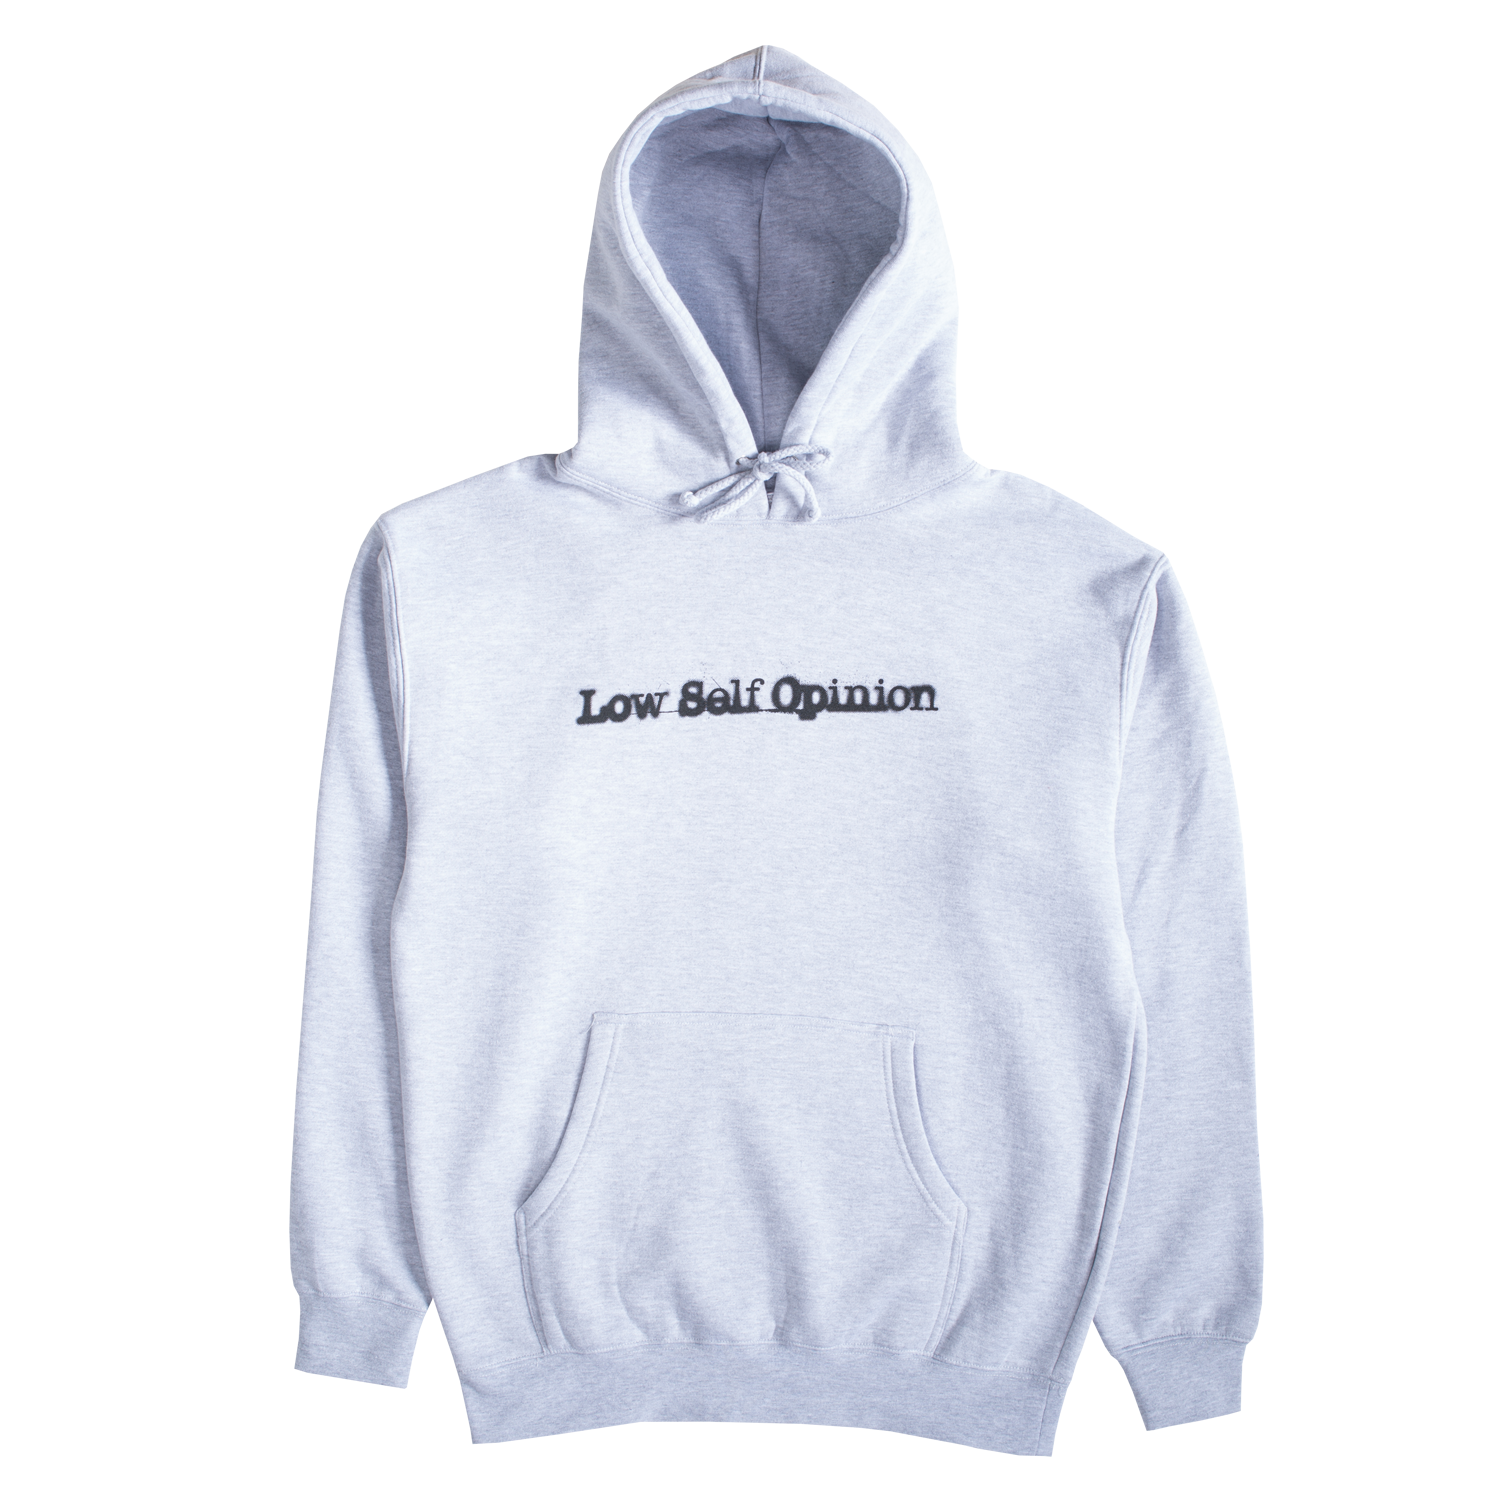 LOW SELF OPINION HOODY